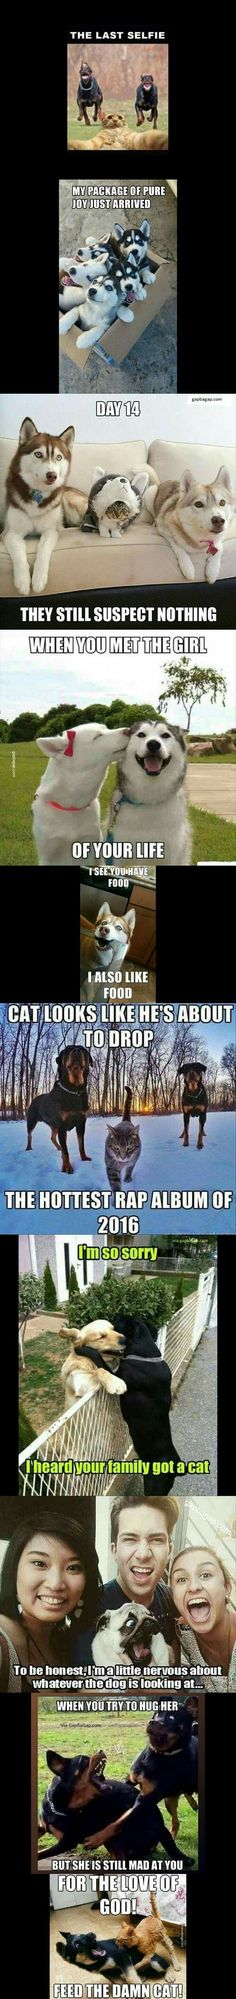 Top 10 Funniest Memes ft. Funny Dogs And Cats